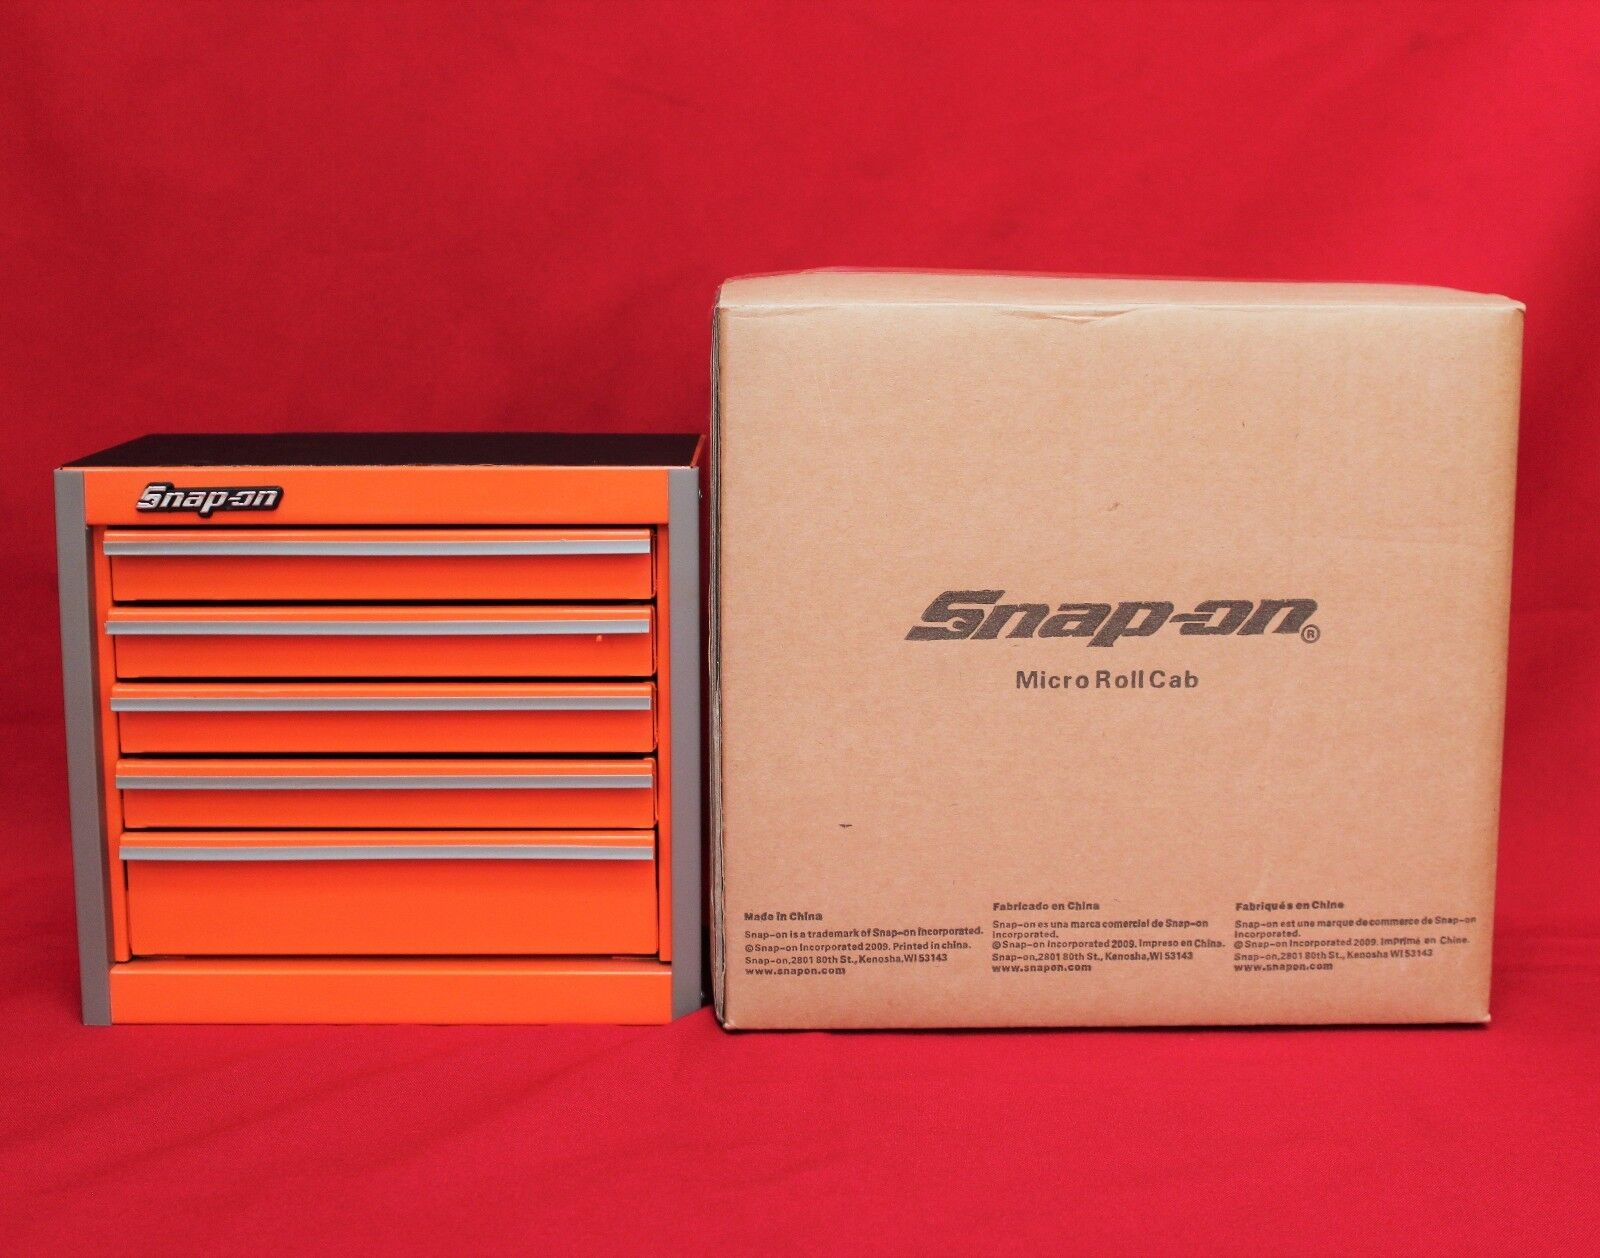 snap on electric orange mini bottom roll cab tool box brand new new for sale in united. Black Bedroom Furniture Sets. Home Design Ideas